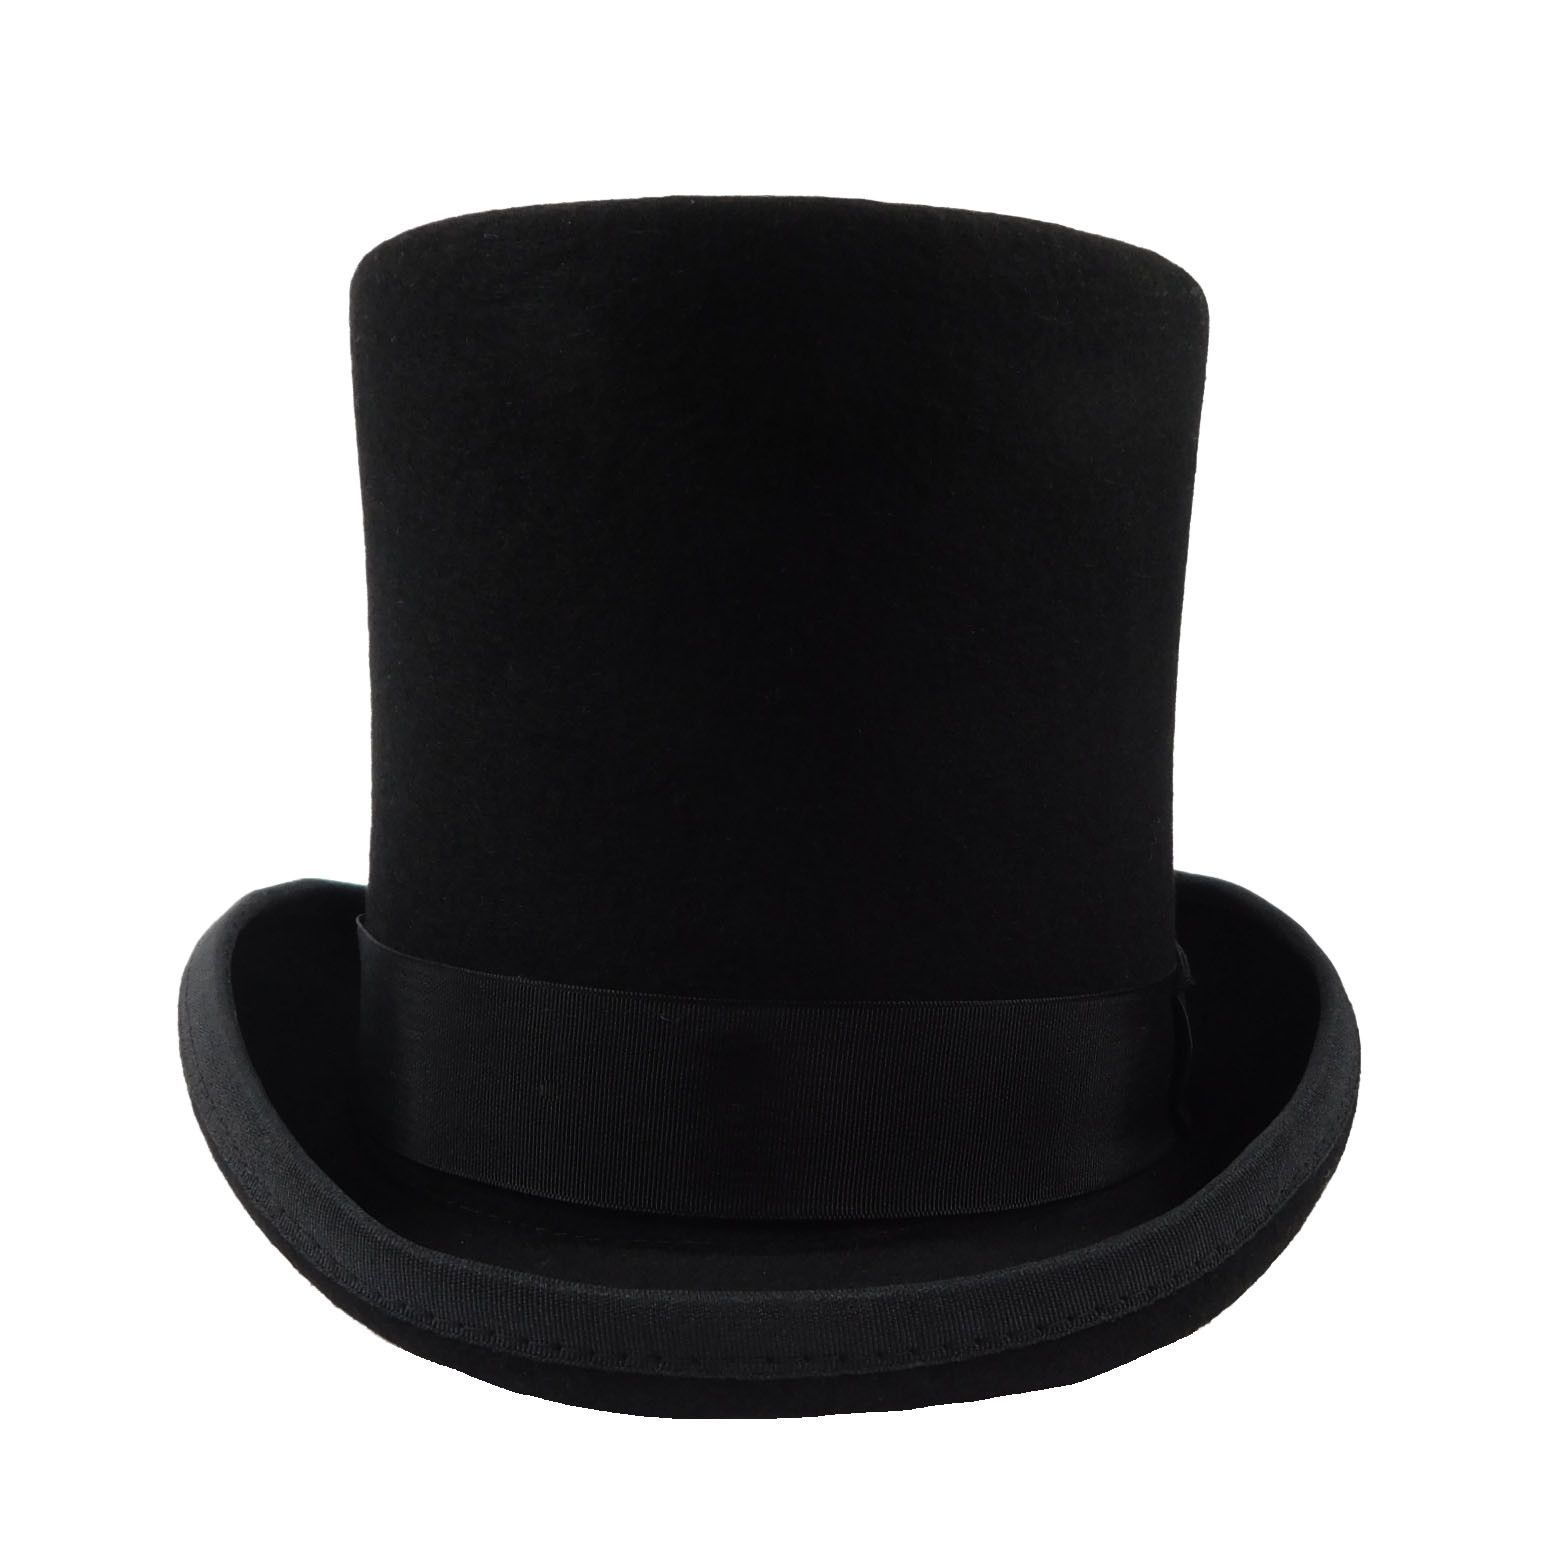 52e03f4729868 Tall Wool Felt Top Hat with Satin Lining